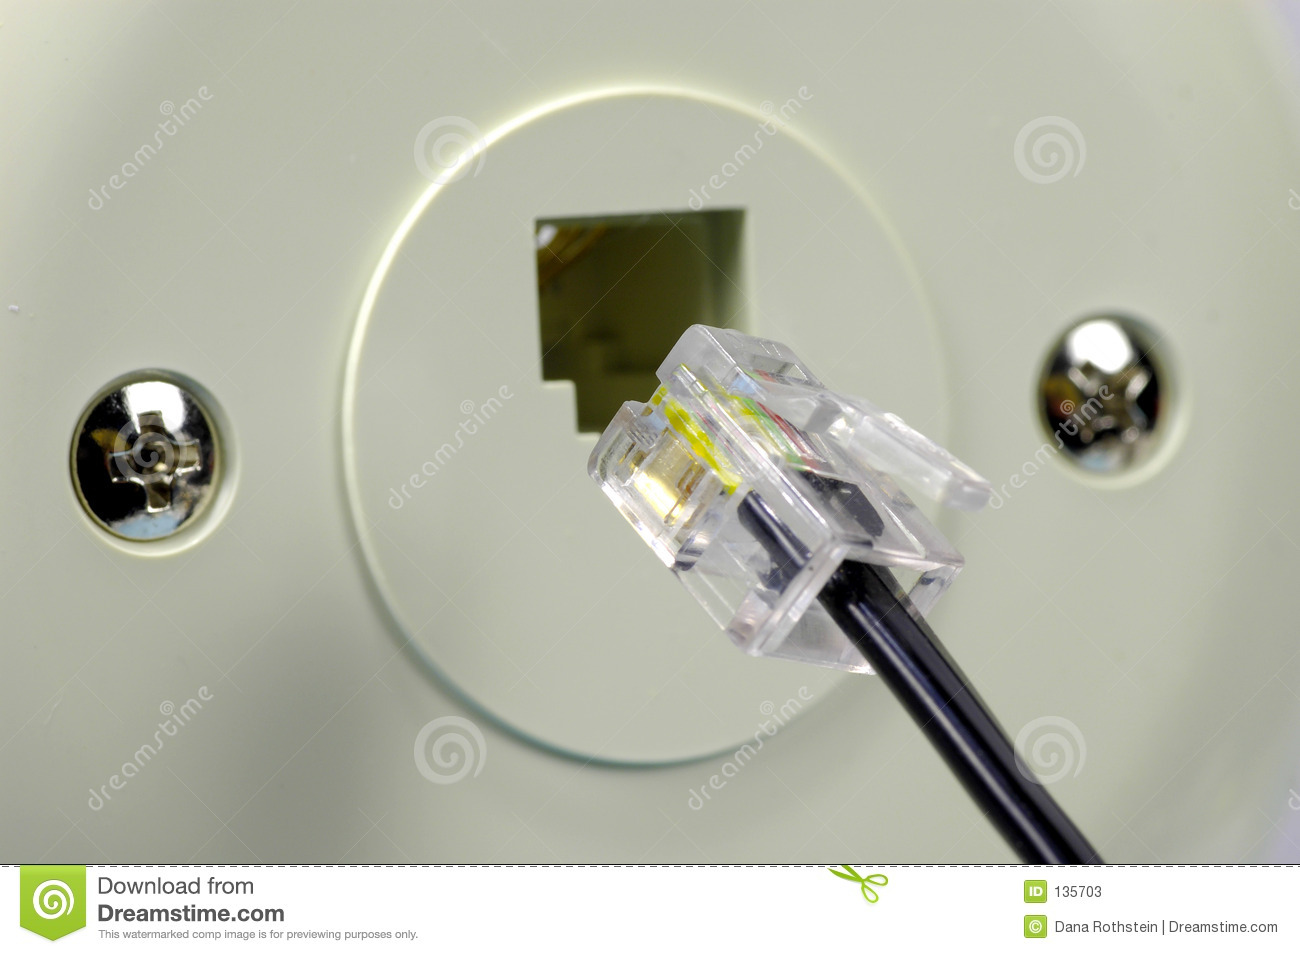 hight resolution of old 4 wire phone jack wiring diagram telephone jack stock photos image 135703 4 wire telephone